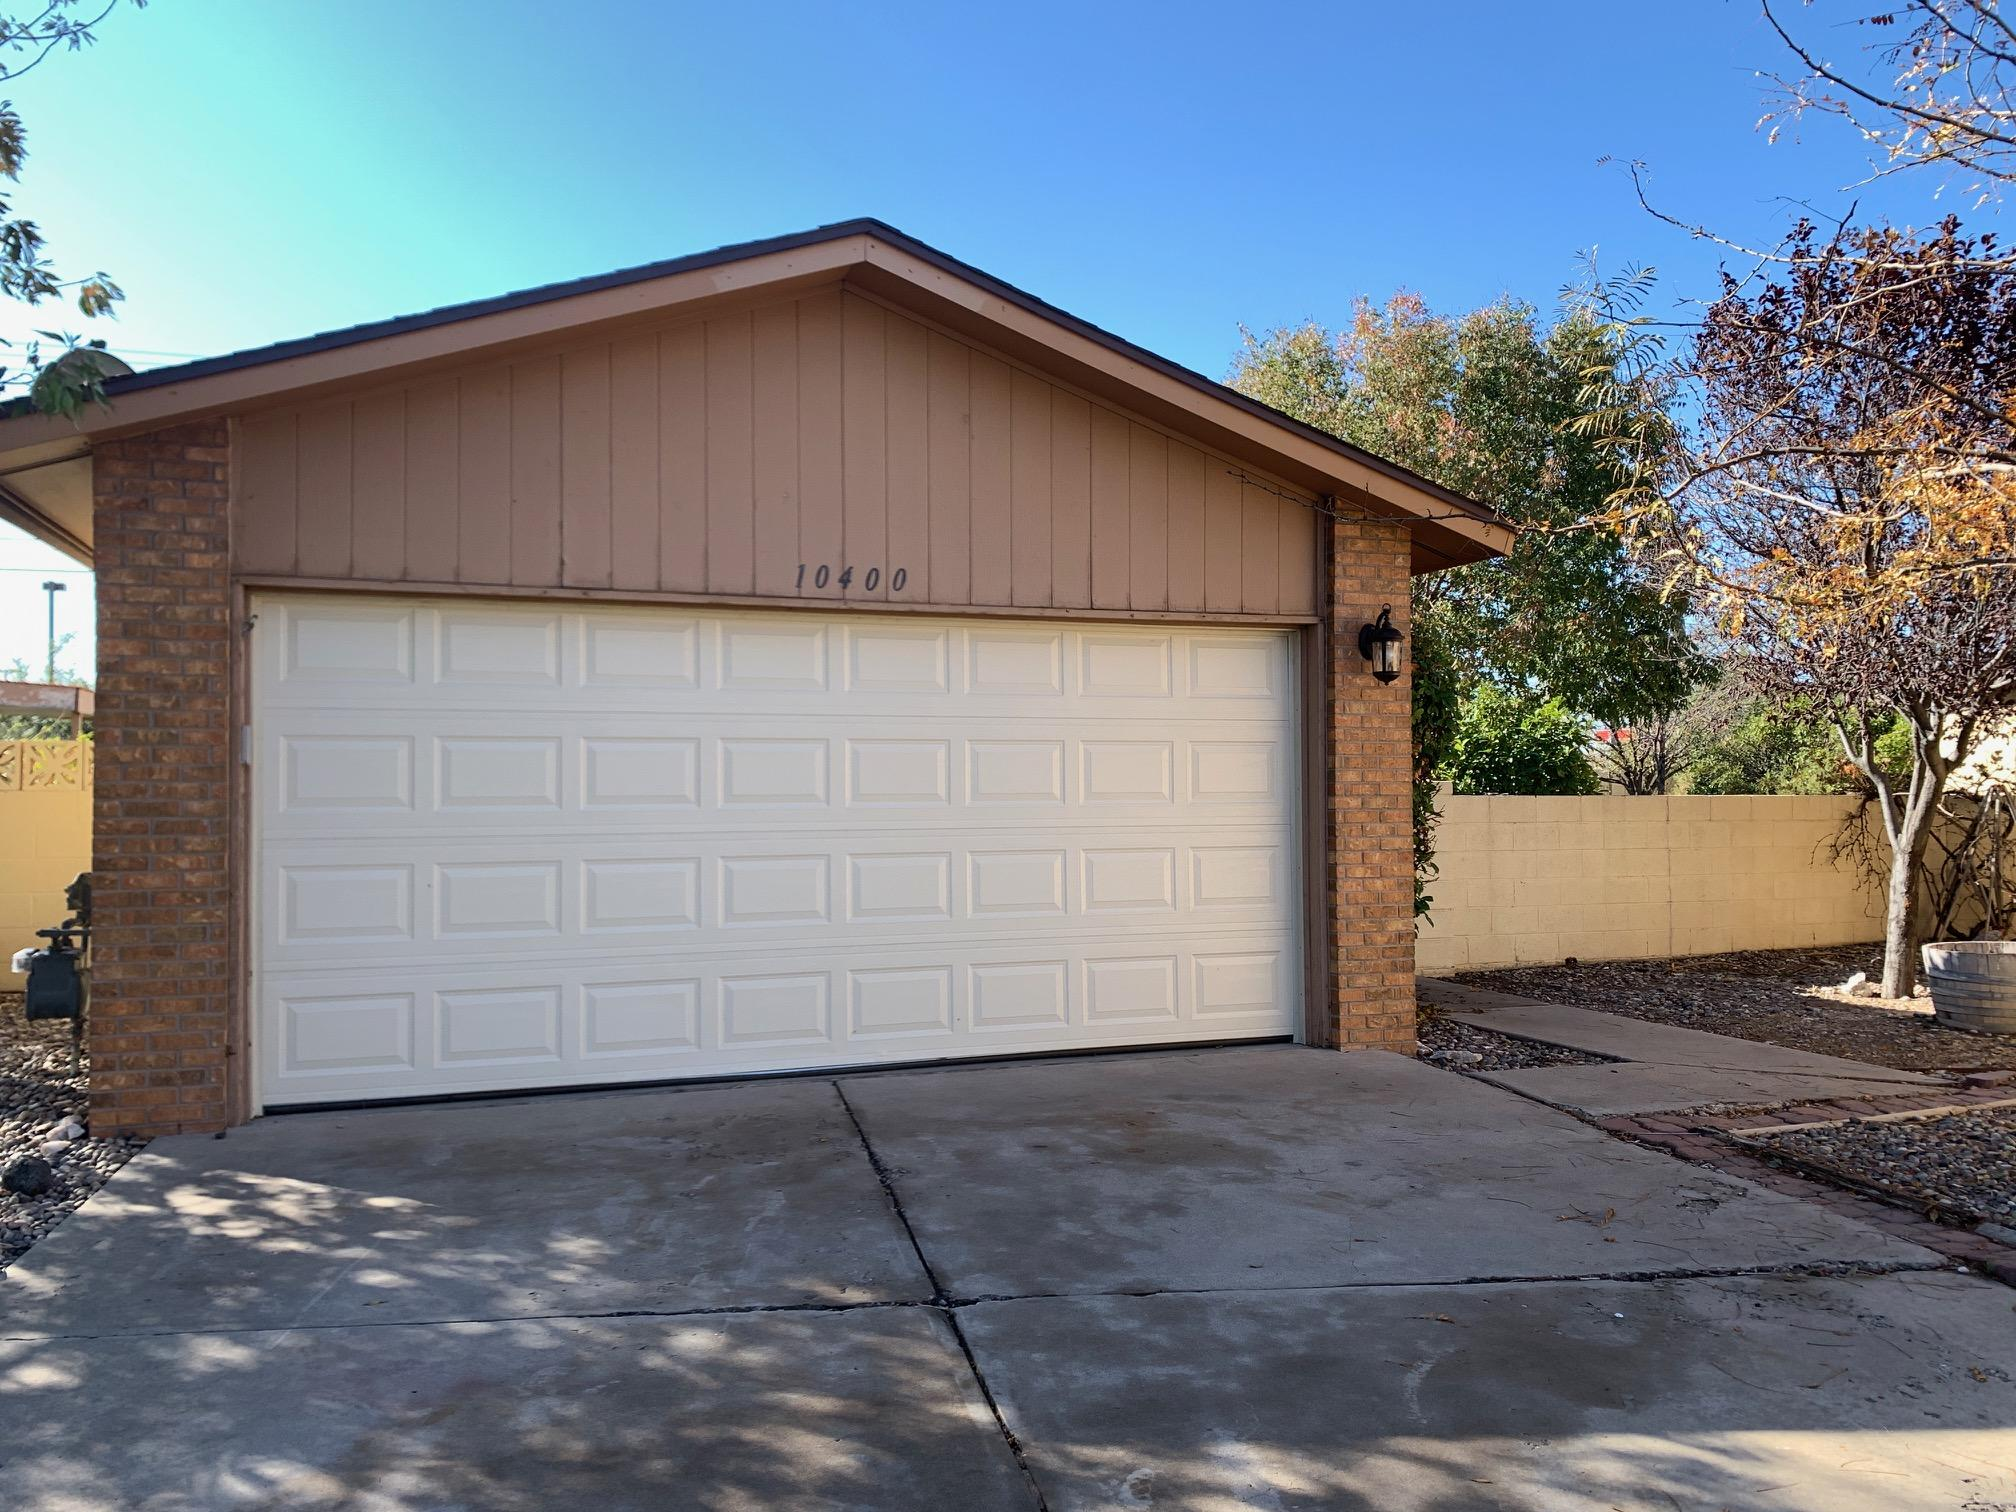 This 2 bedroom, 2 bath home is located in the gated Towne Park community and is close to shopping and restaurants, as well as Sandia Labs & KAFB. There is a fireplace for those chilly winter evenings and the lot is one of the larger ones in the neighborhood. 2 car detached garage. Community amenities include walking trails, pools, tennis courts, parks & playgrounds. The HOA covers front yard maintenance. This home is on leased land - the land can be purchased from the HOA for $27,000 or leased for $125/month. HOA fee is $115/month and water is billed to home owners per their usage. Agents please review all MLS attachments.